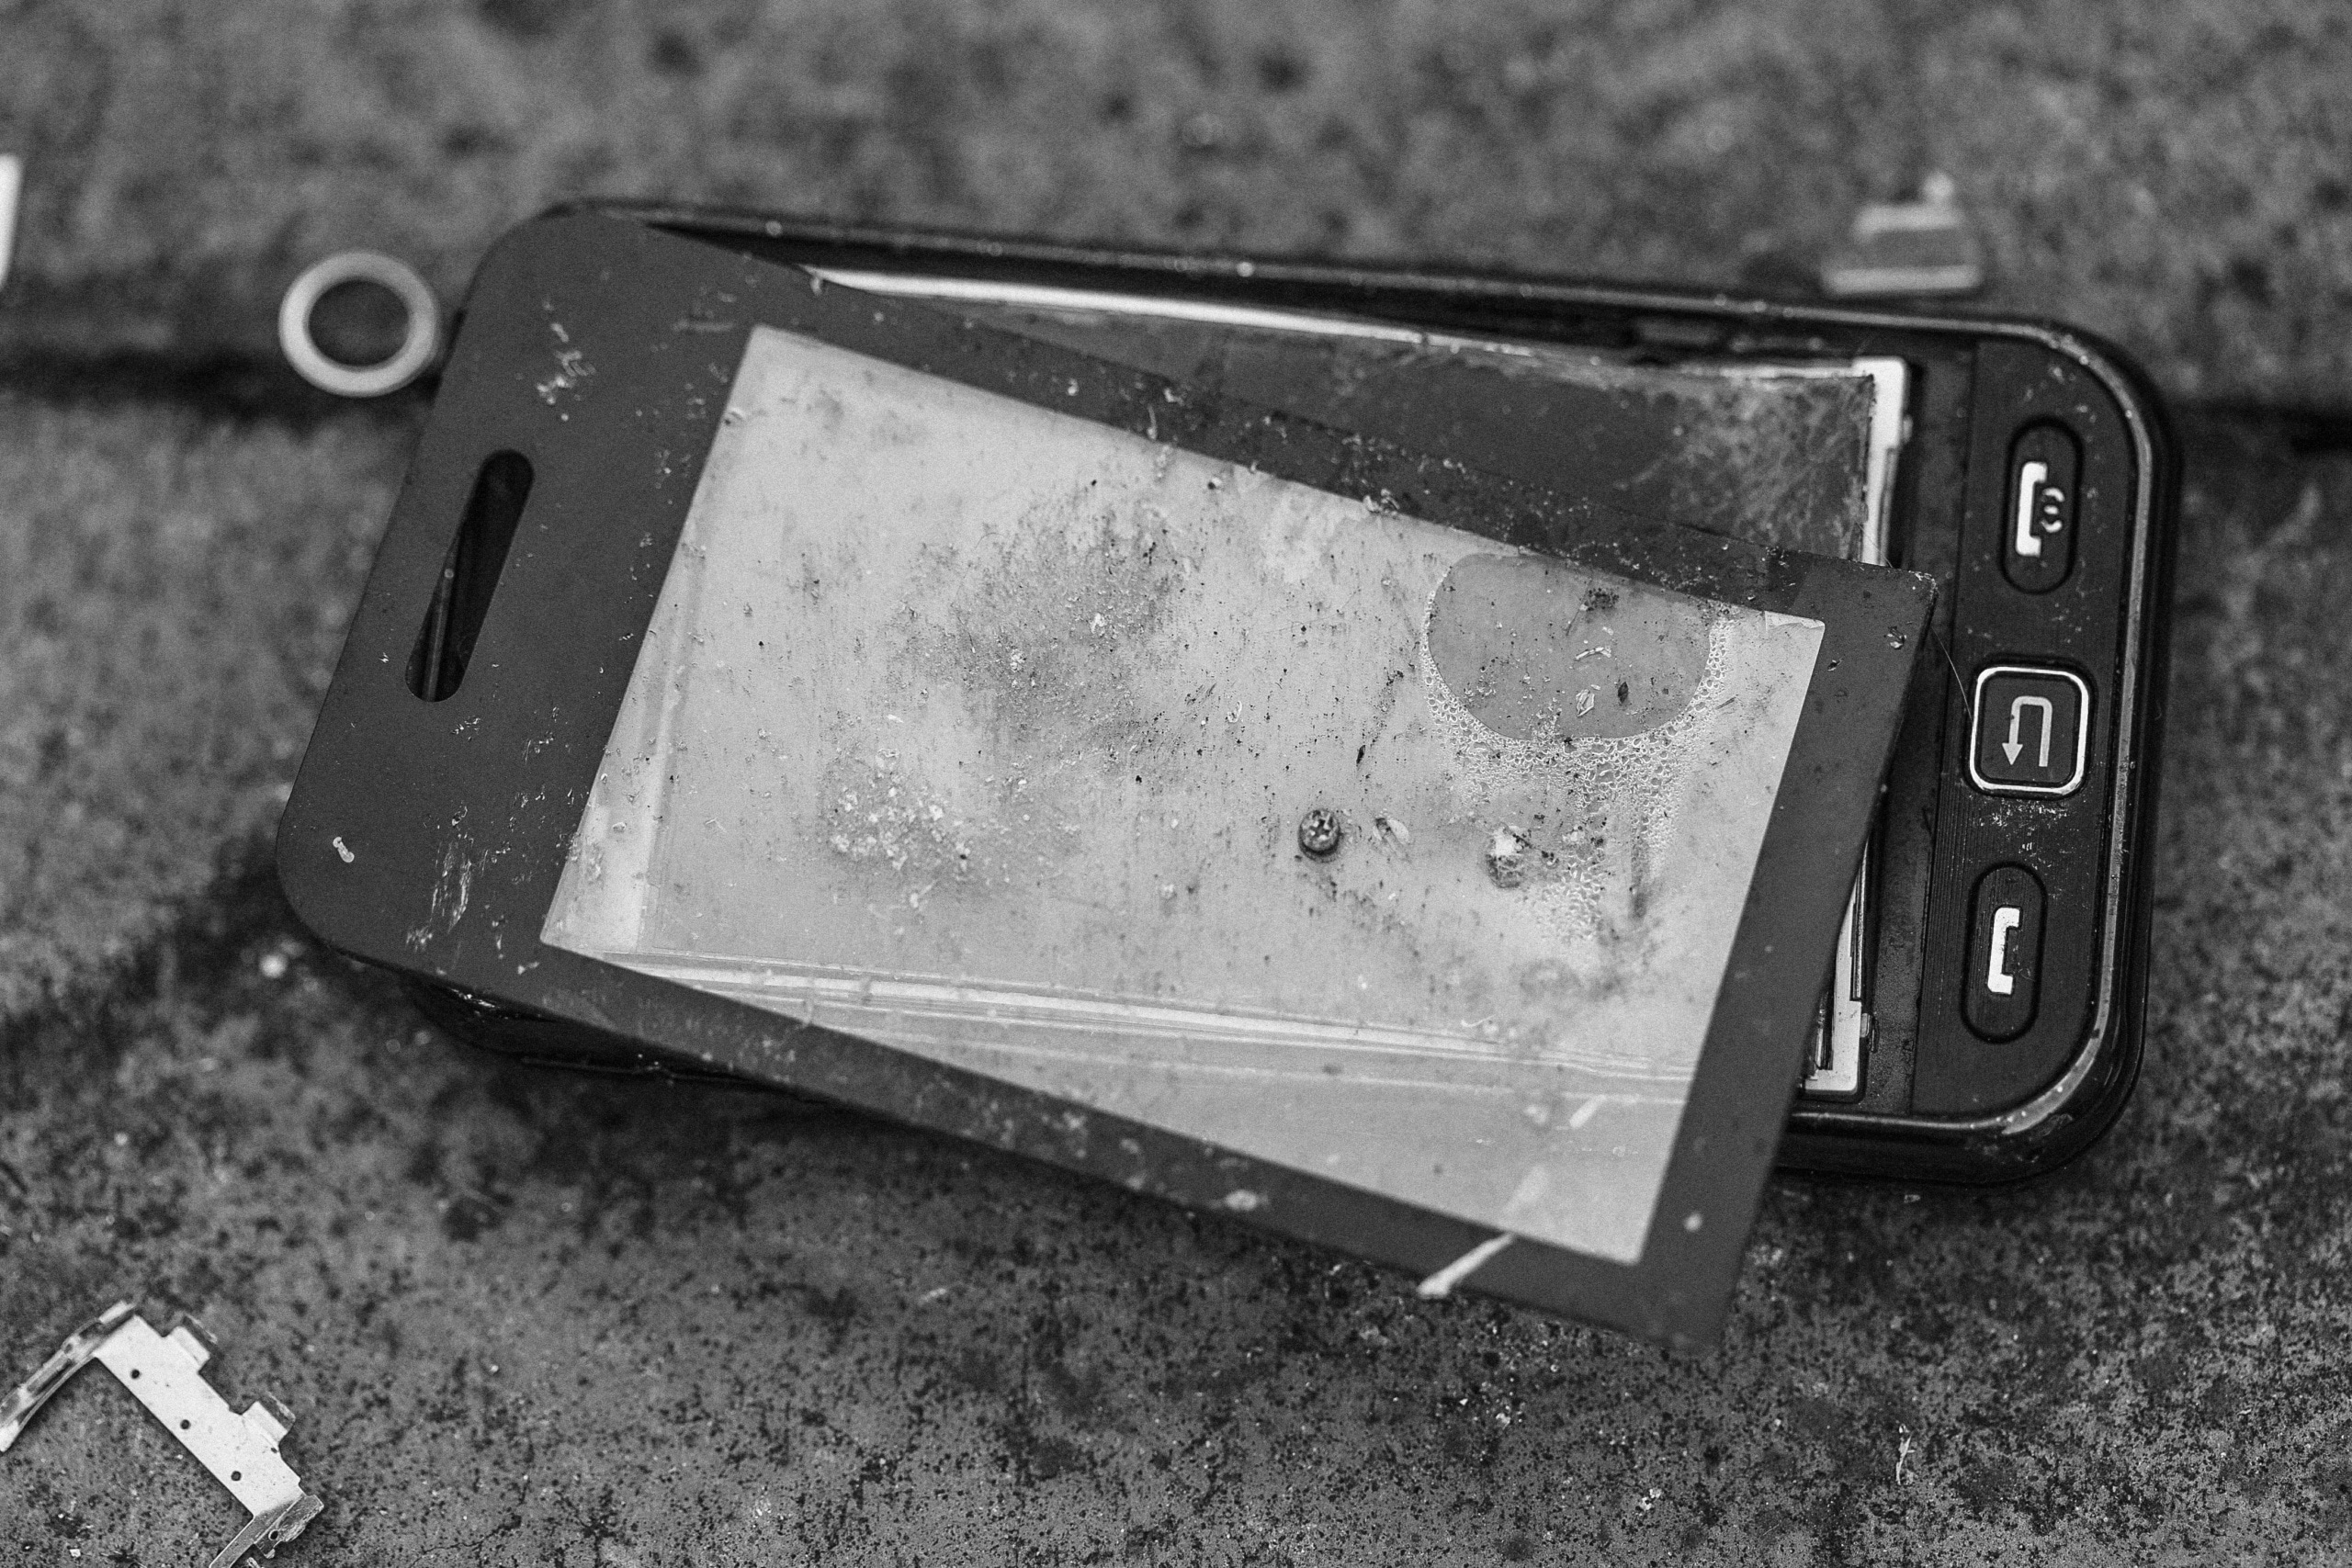 a smashed smart phone